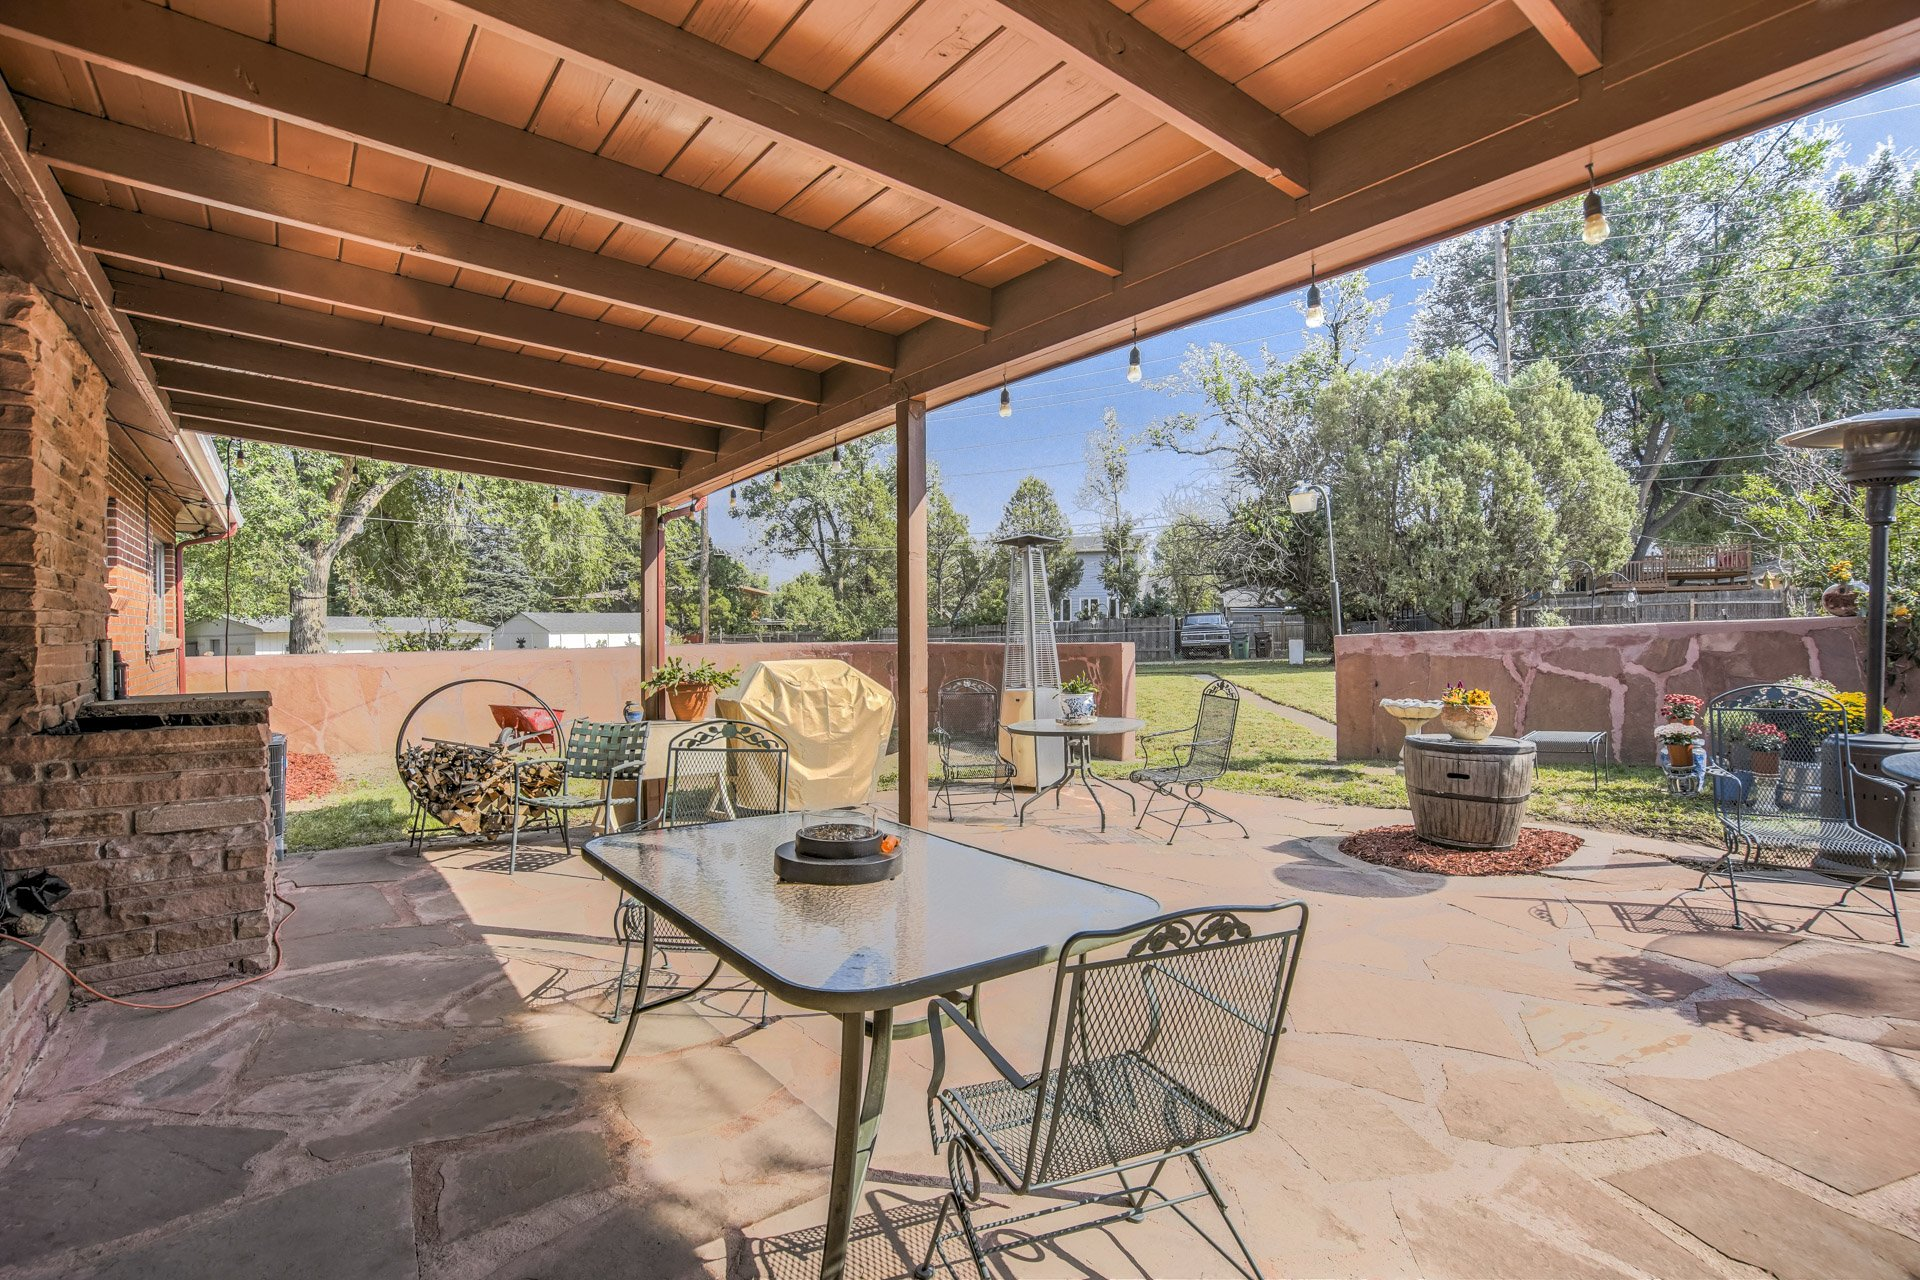 sandstone patio with tables